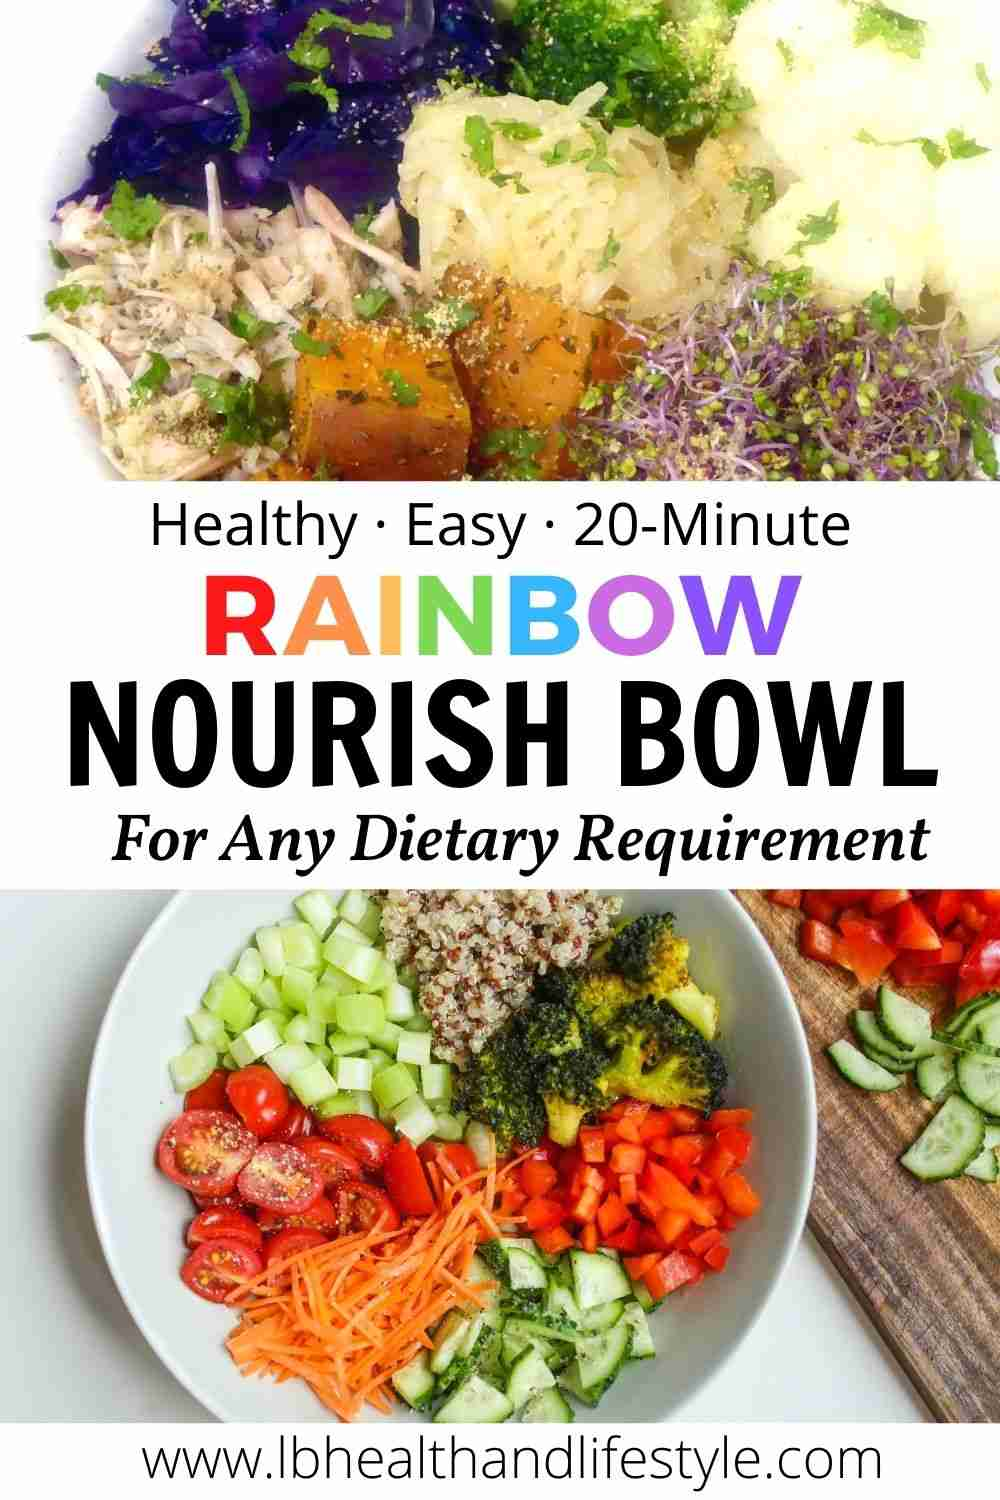 Rainbow Nourish Bowl – for any dietary requirement